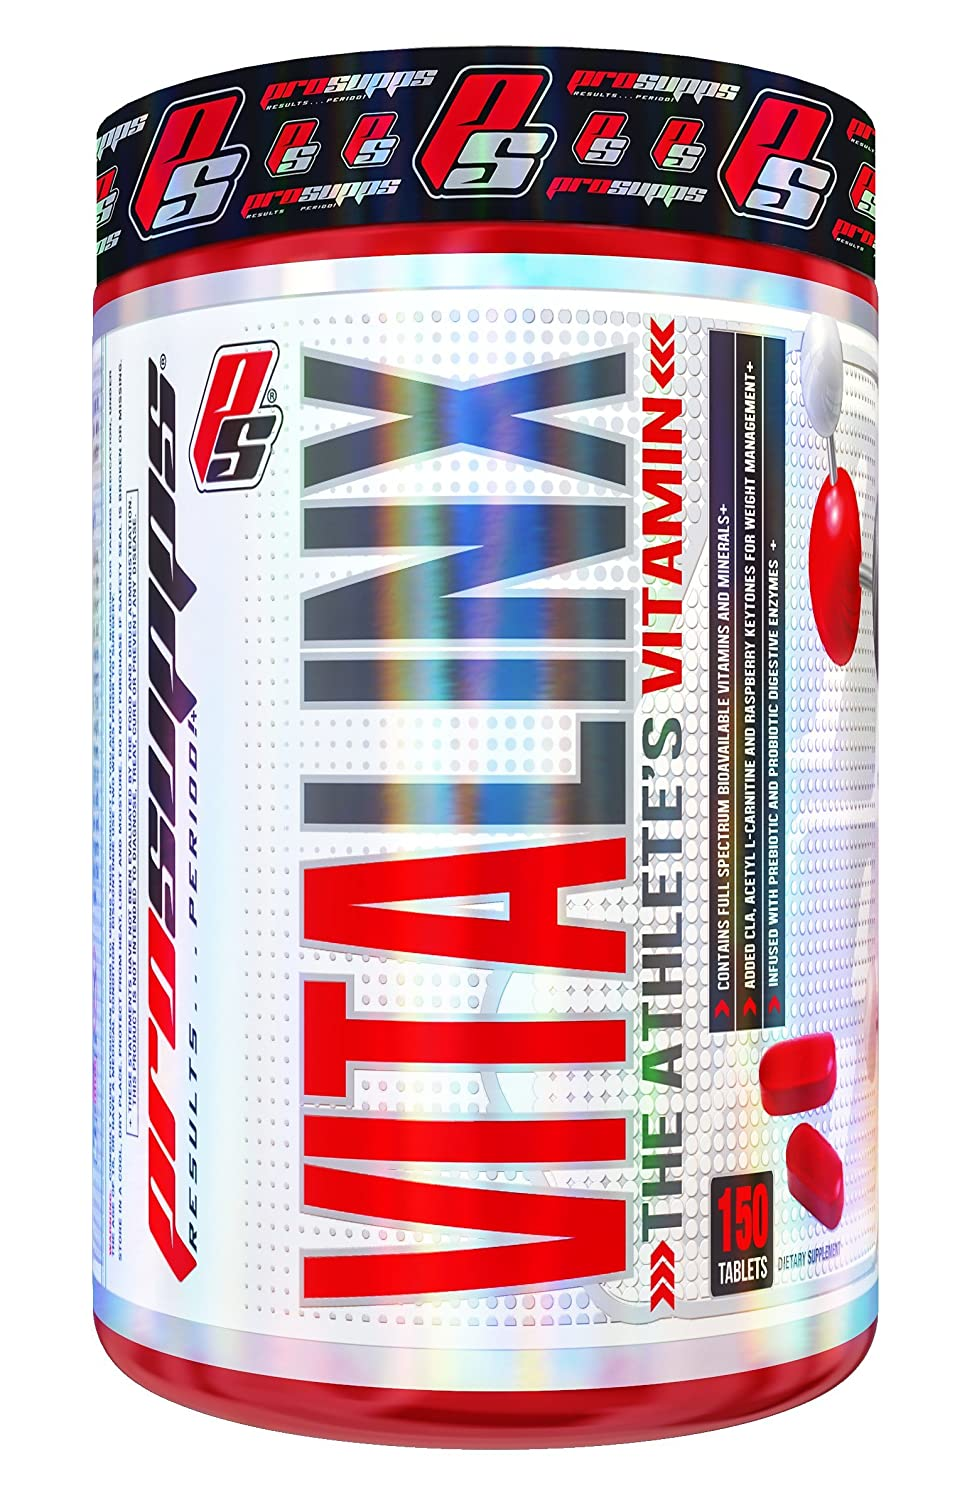 PRO SUPPS Vitalinx The Athlete s Vitamin with Full Spectrum of Bioavailable Vitamins and Minerals, 150 Count